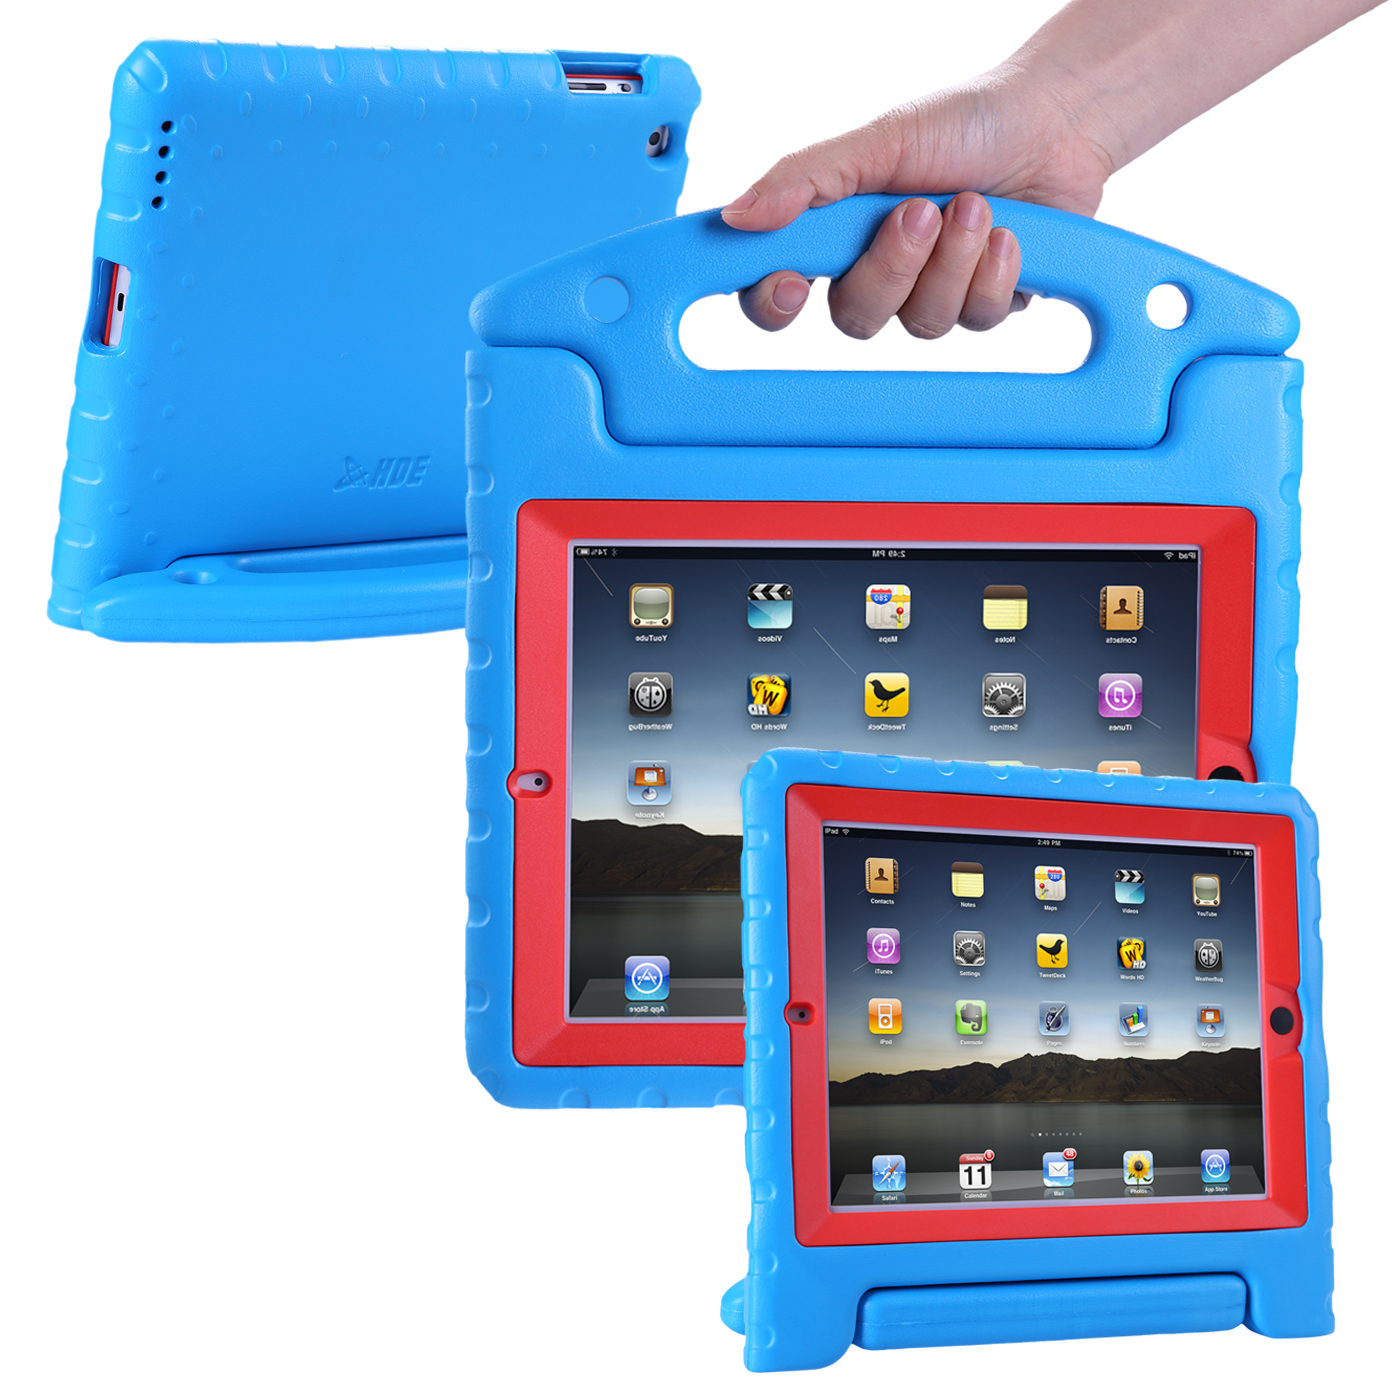 HDE iPad 2 3 4 Bumper Case for Kids Shockproof Hard Cover Handle Stand with Built in Screen Protector for Apple iPad 2nd 3rd 4th Generation (Blue Red)